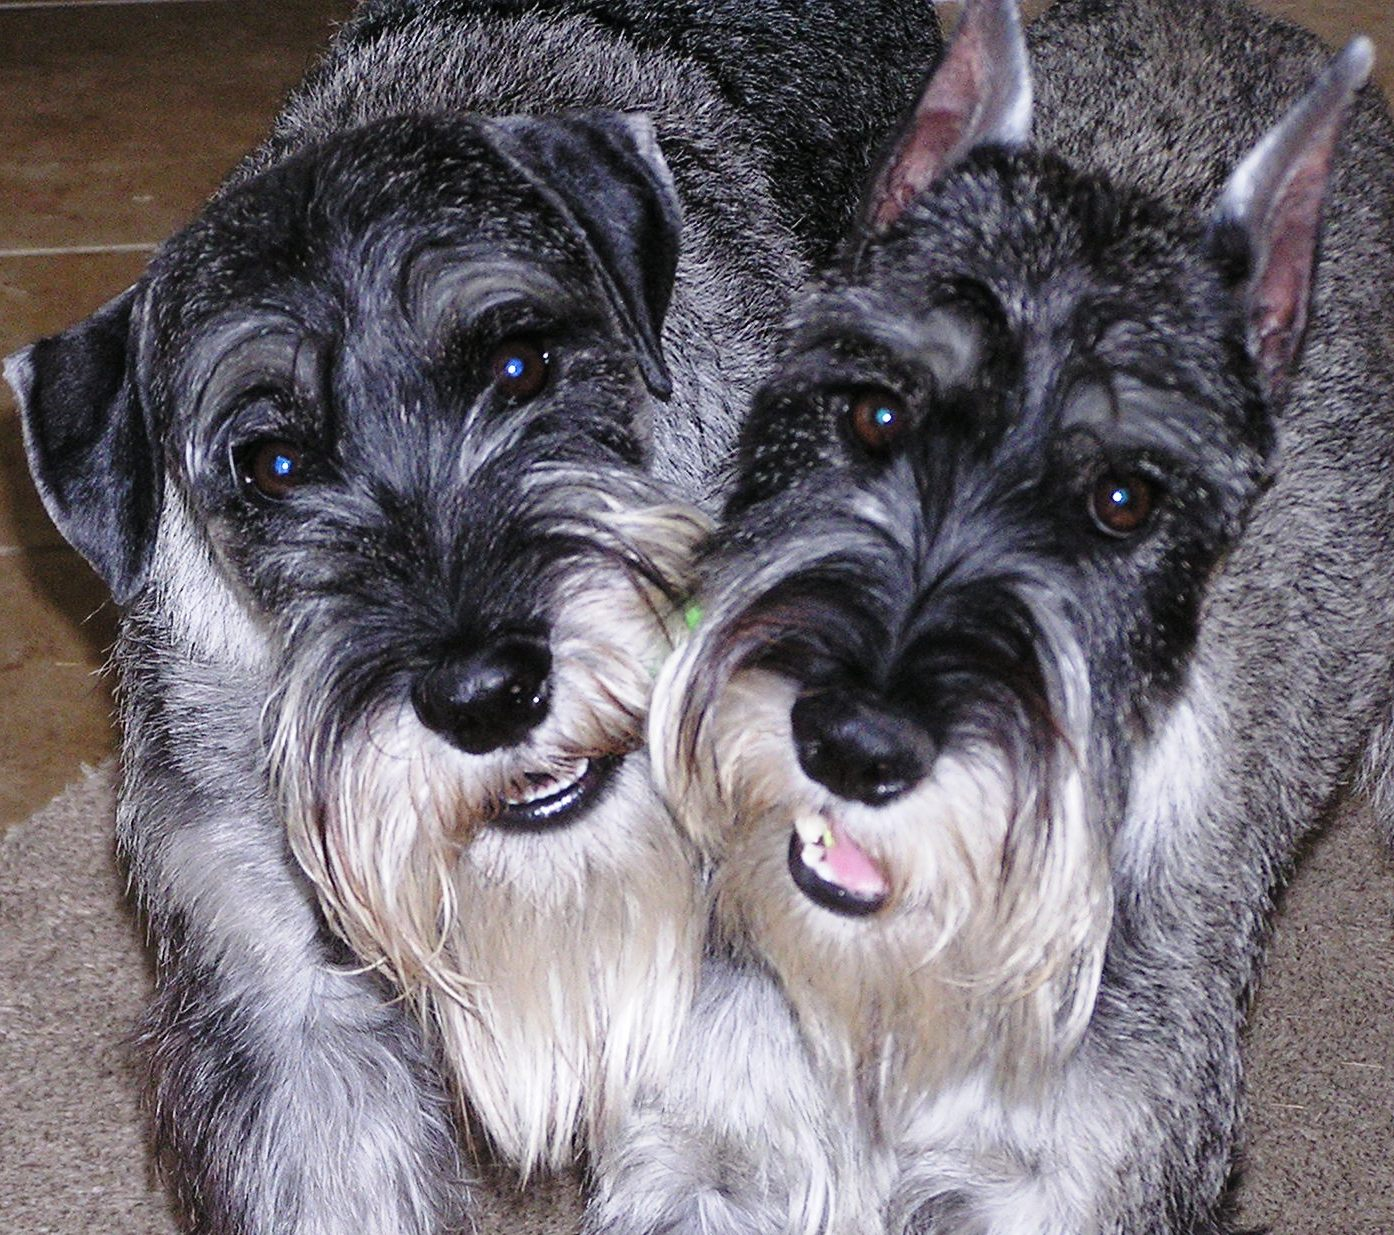 Which of these is not a popular Schnauzer hybrid?